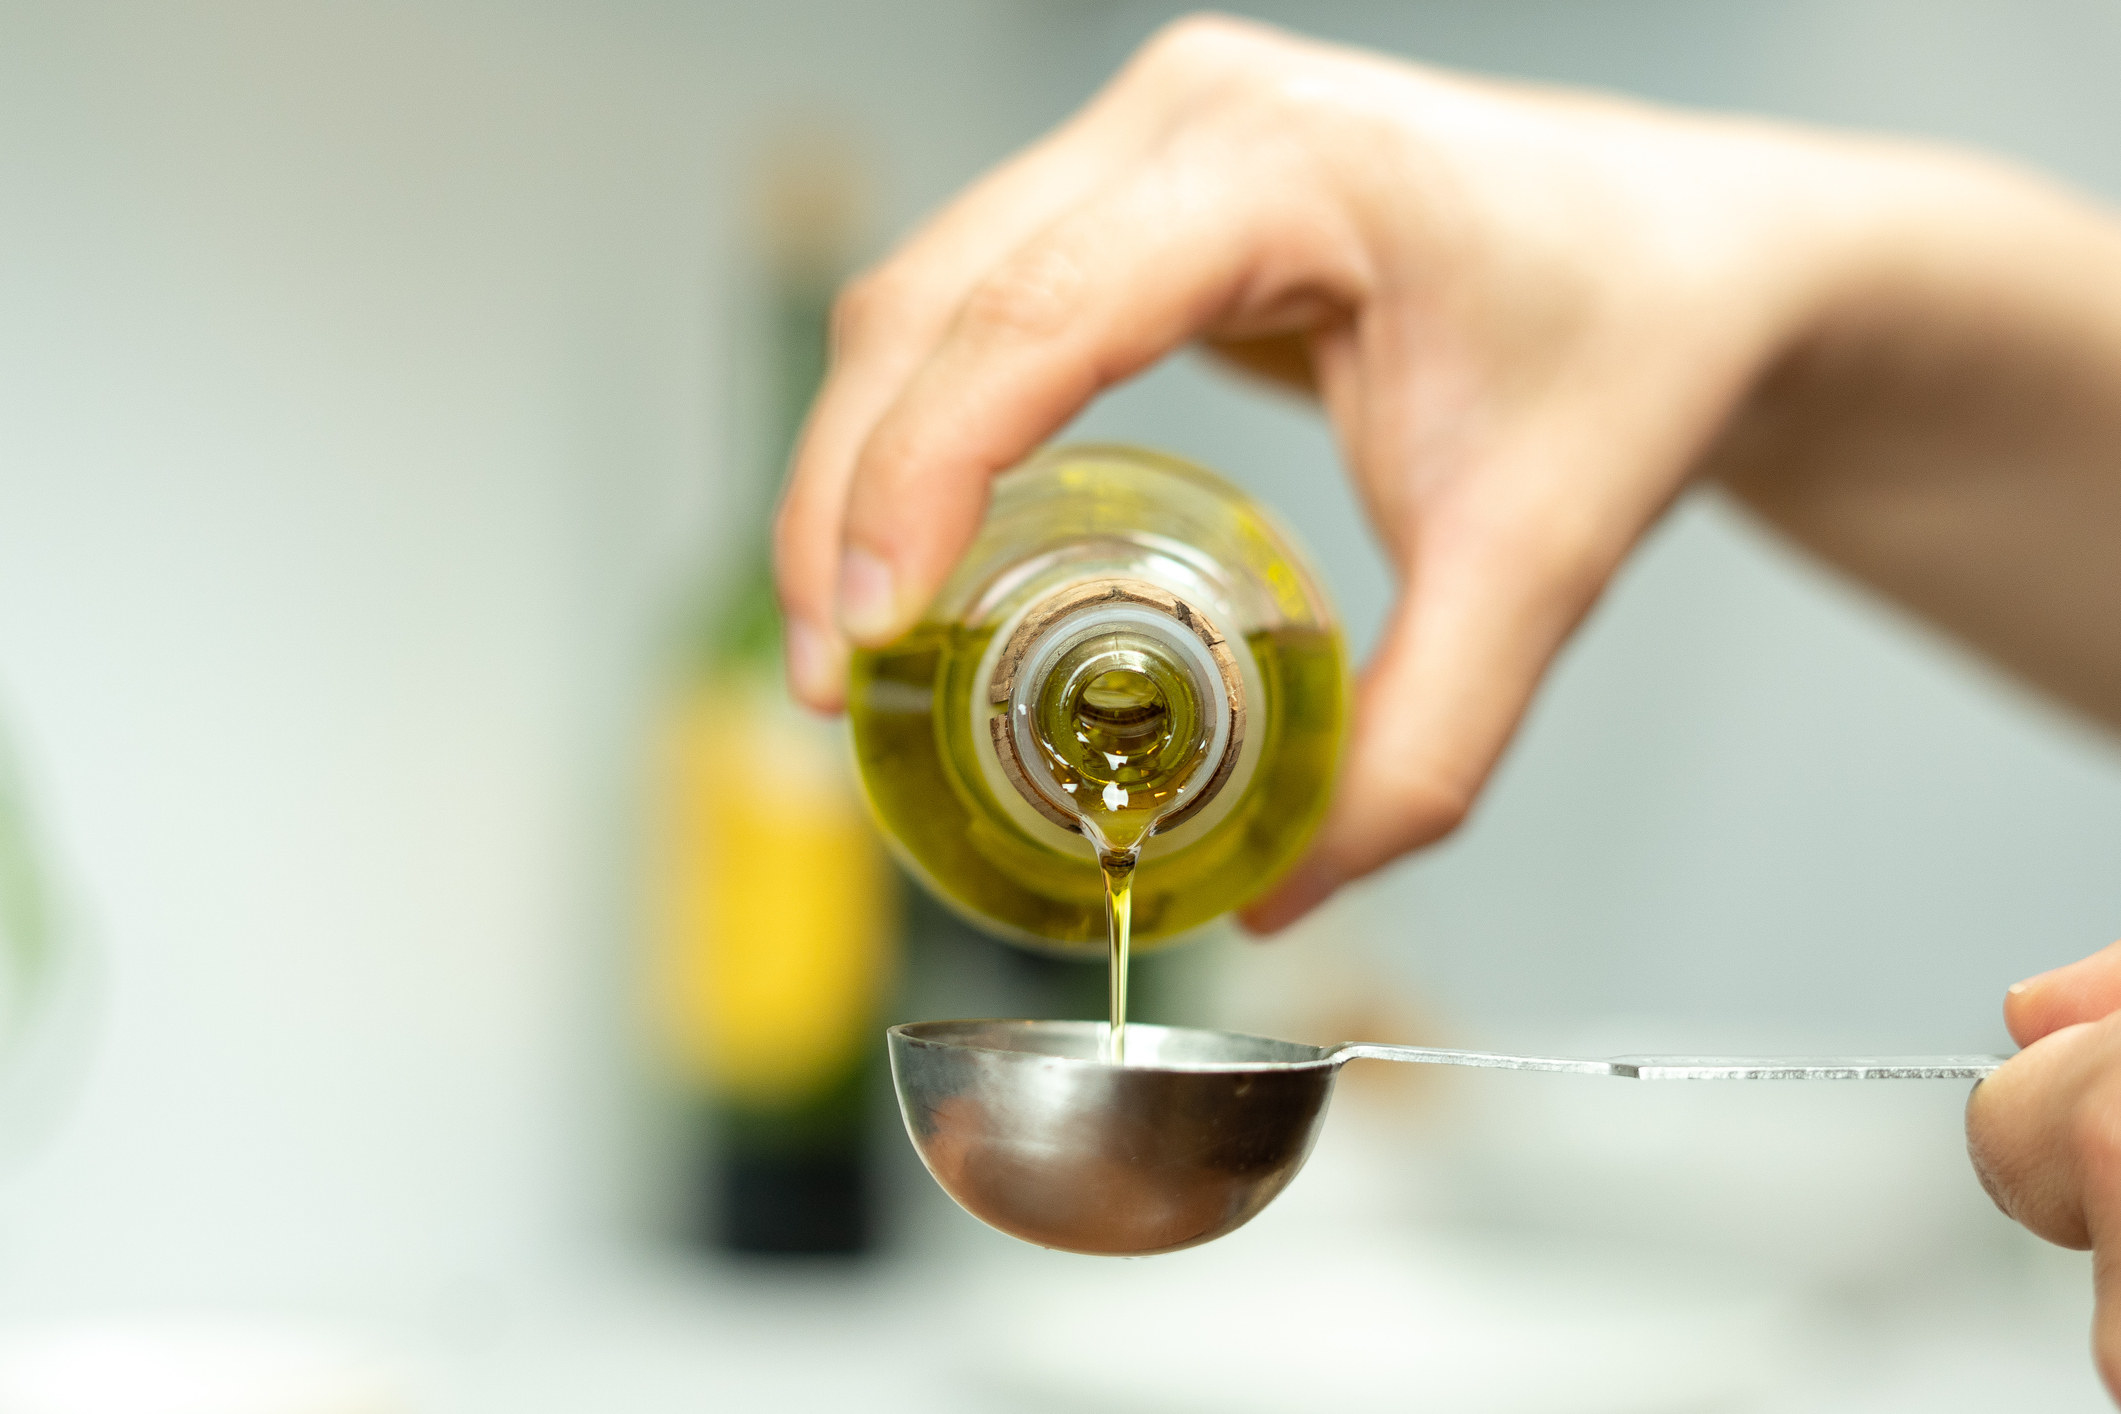 Measuring olive oil into a spoon